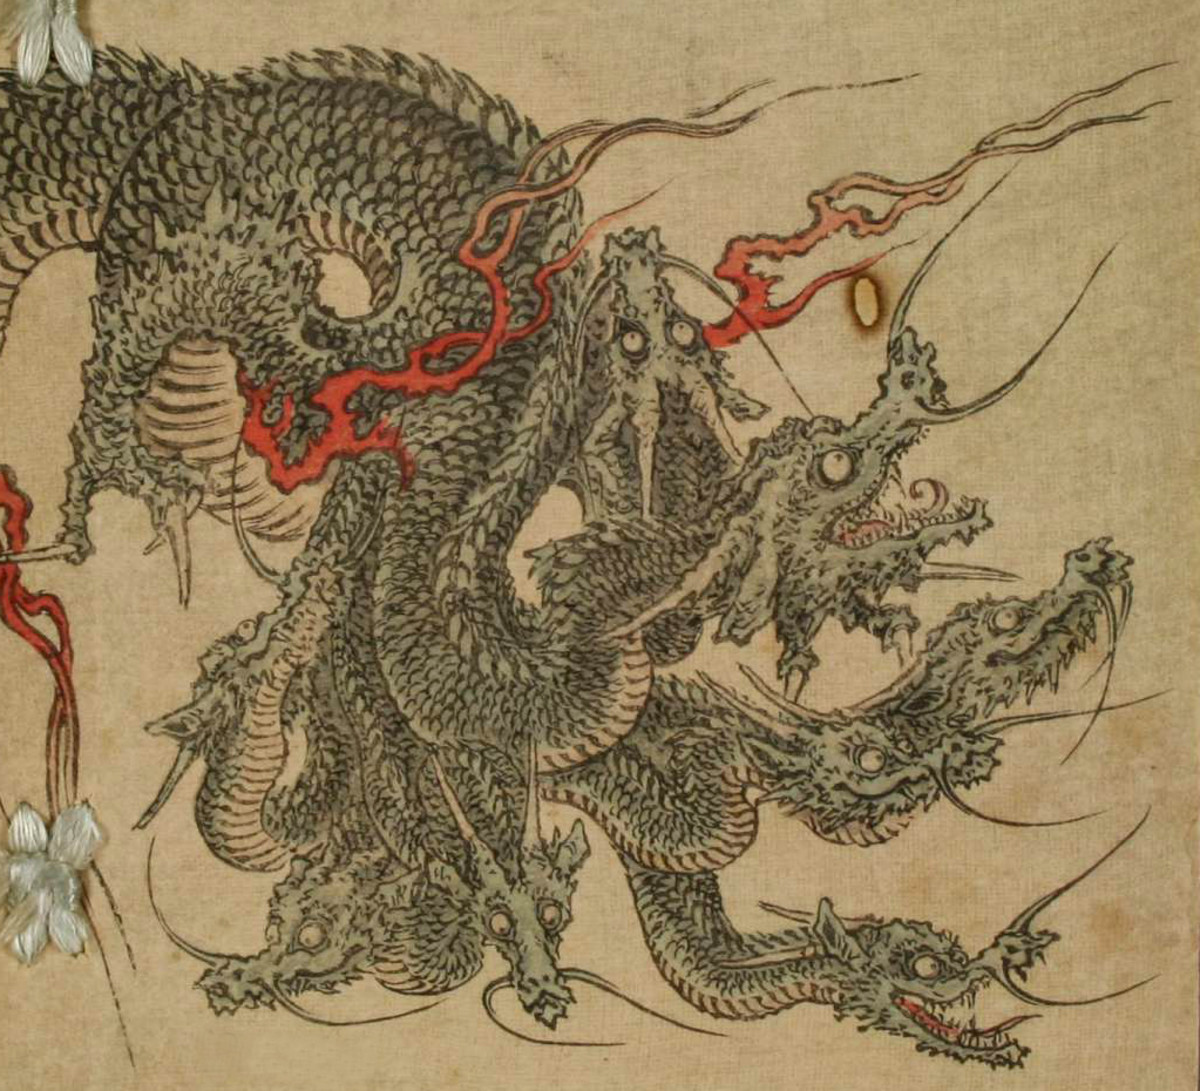 An illustration of Orochi.